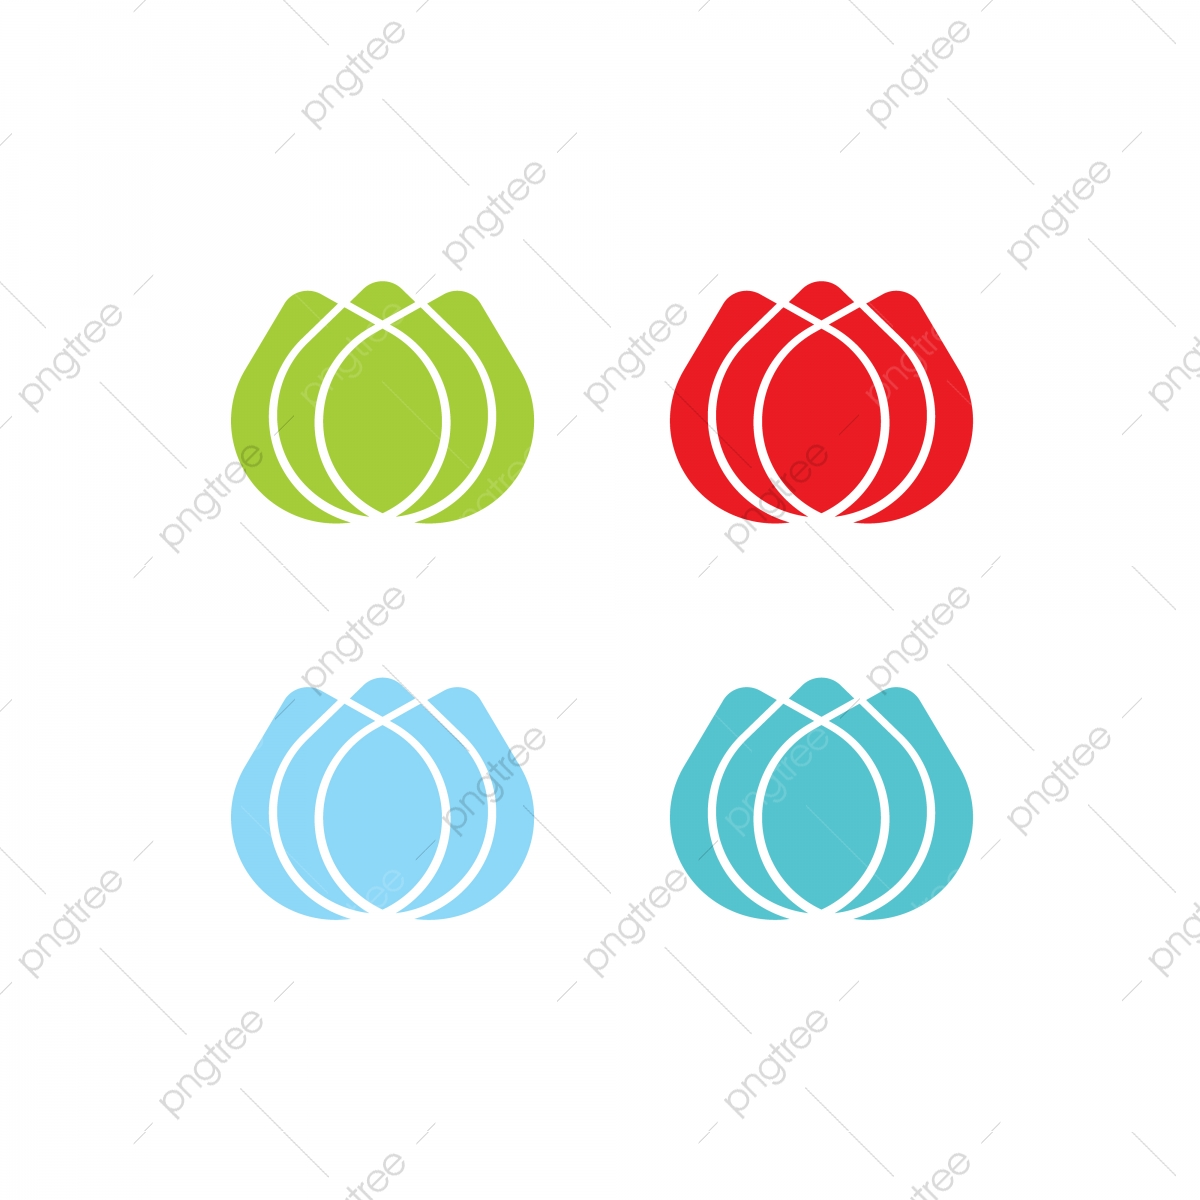 tulip flower logo vector designs template logo icons flower icons template icons png and vector with transparent background for free download https pngtree com freepng tulip flower logo vector designs template 5287287 html